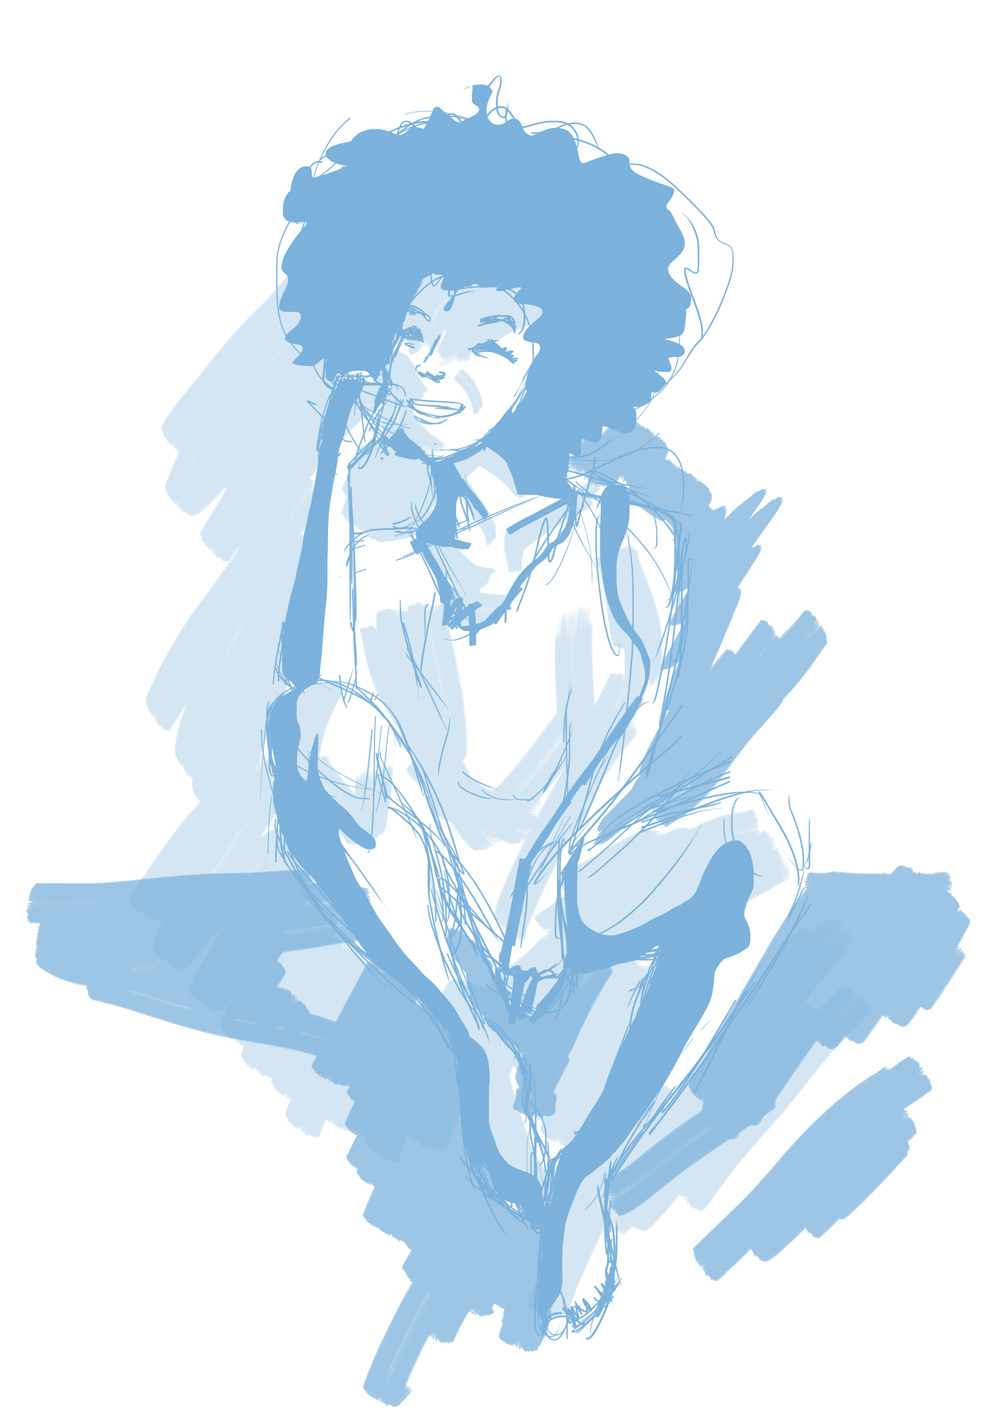 fro-2